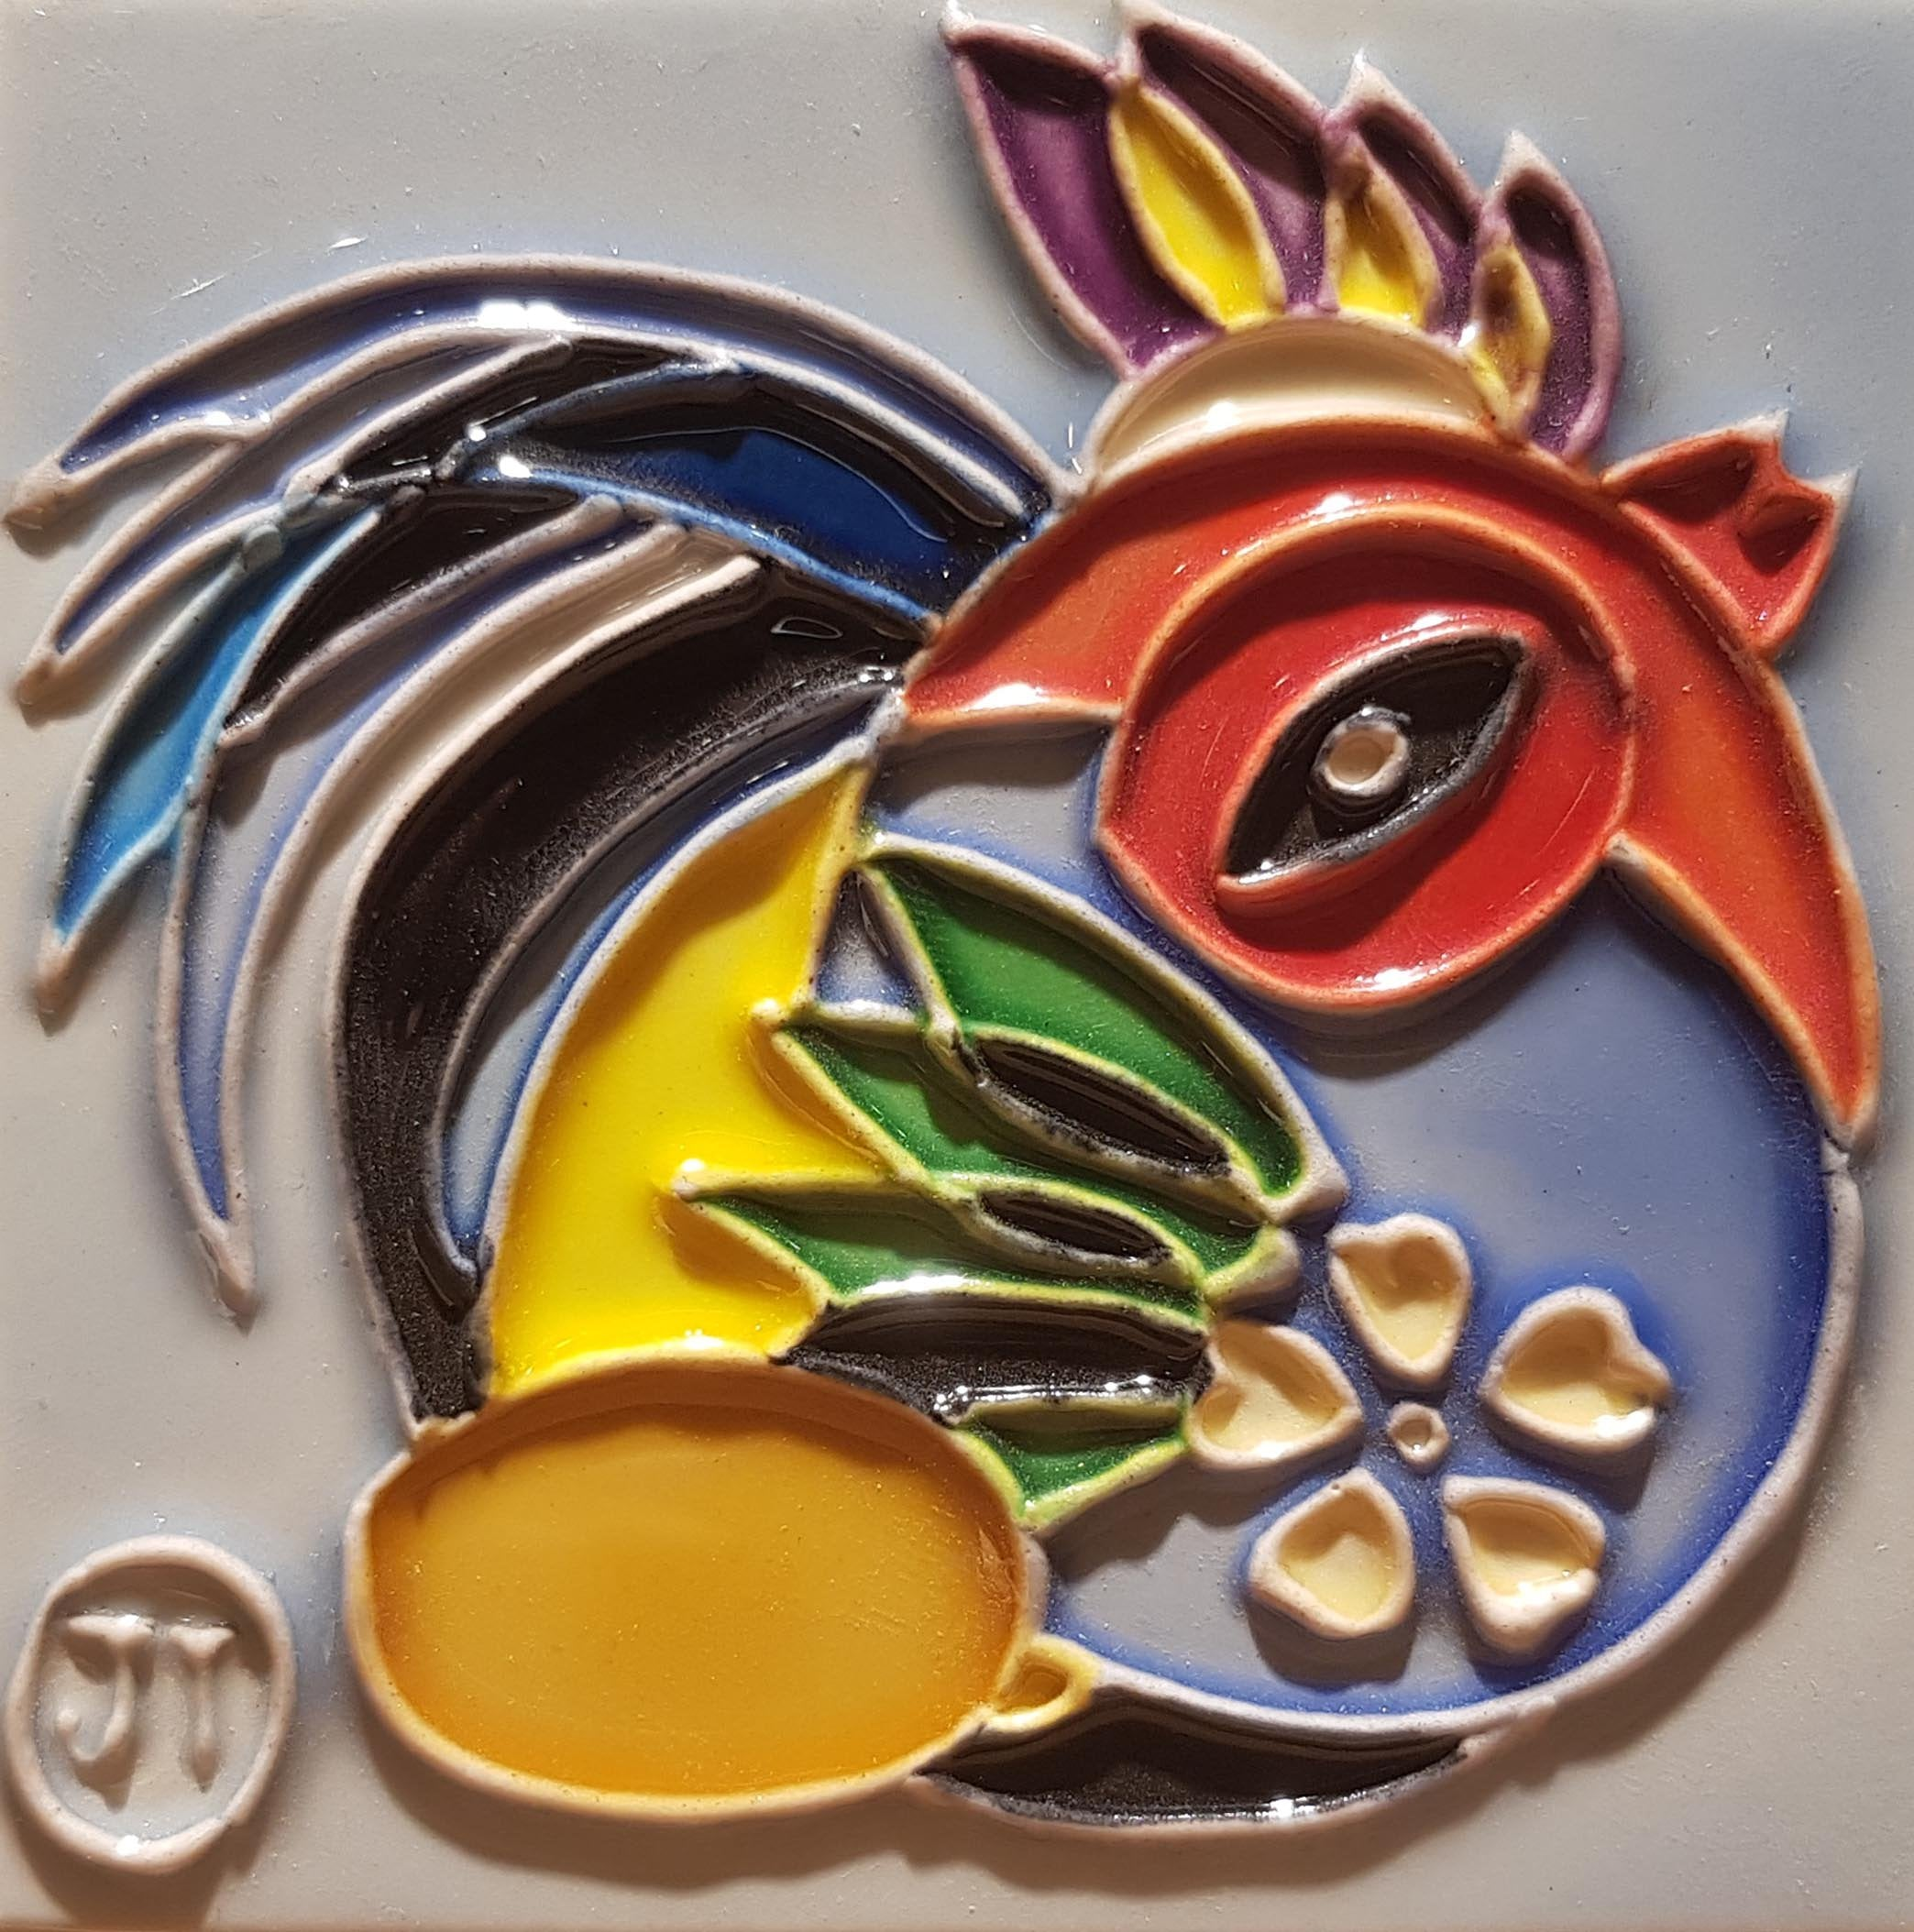 1190 Horoscope Chicken 10cm x 10cm Ceramic Tile